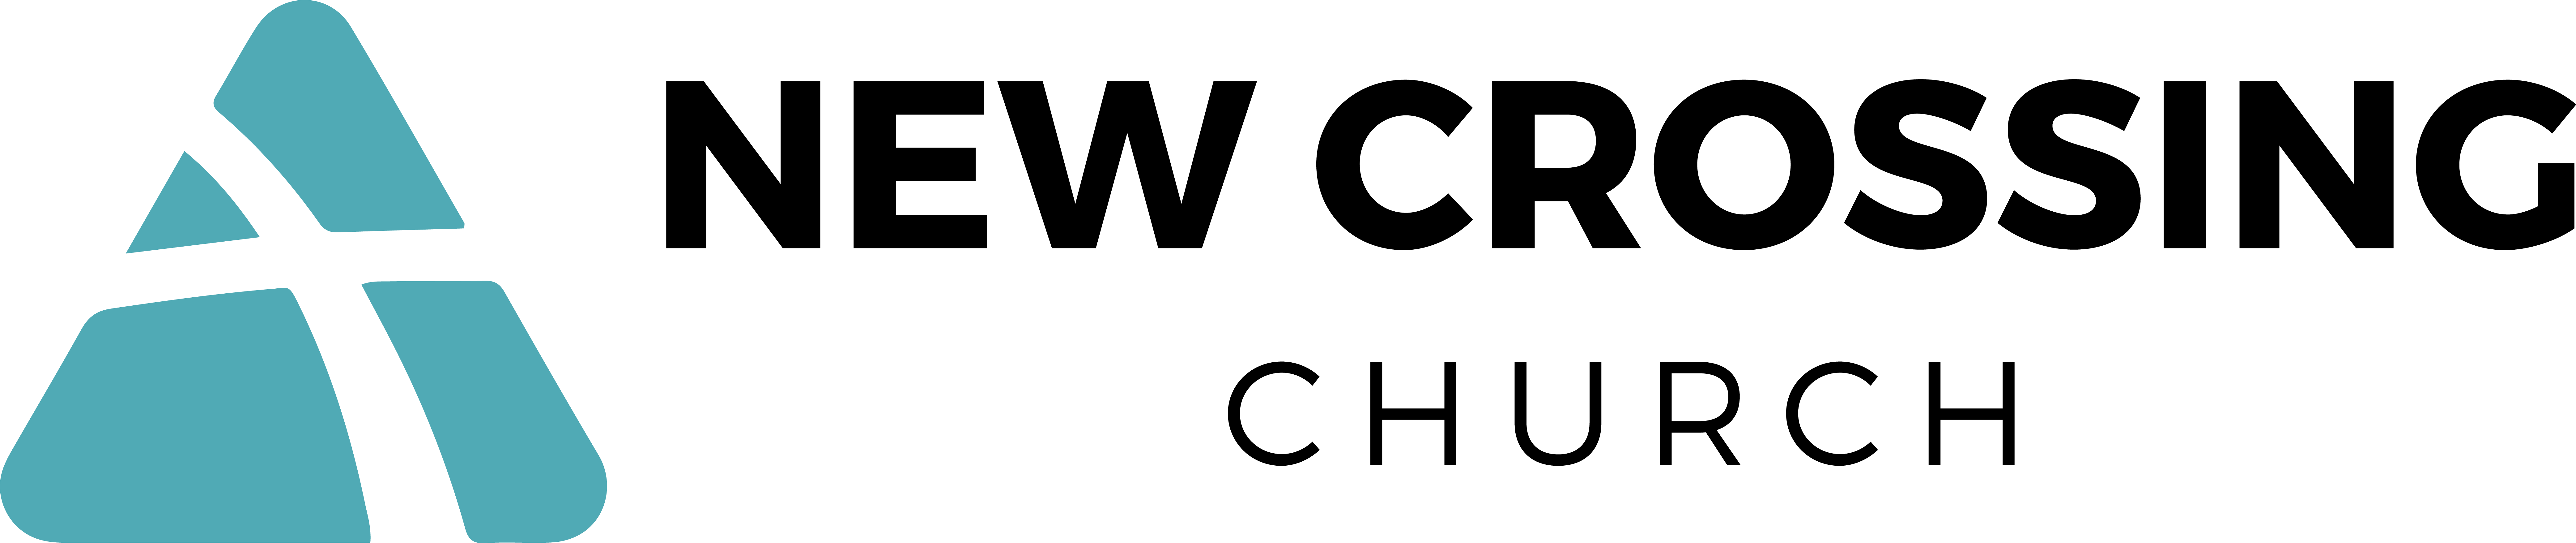 New Crossing Church